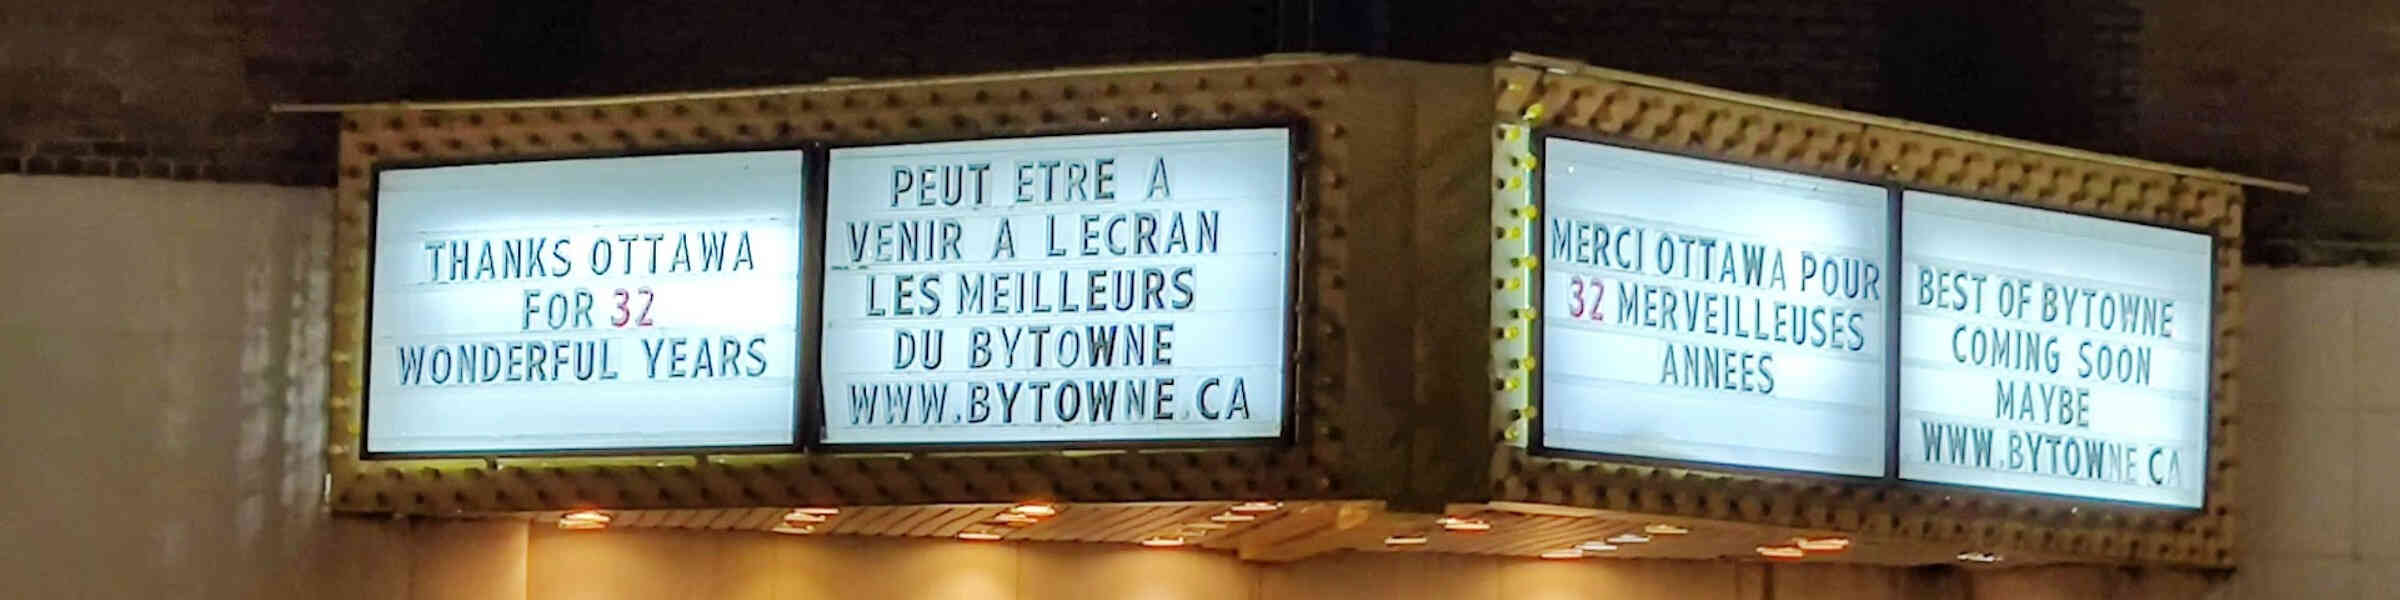 image of ByTowne marquee